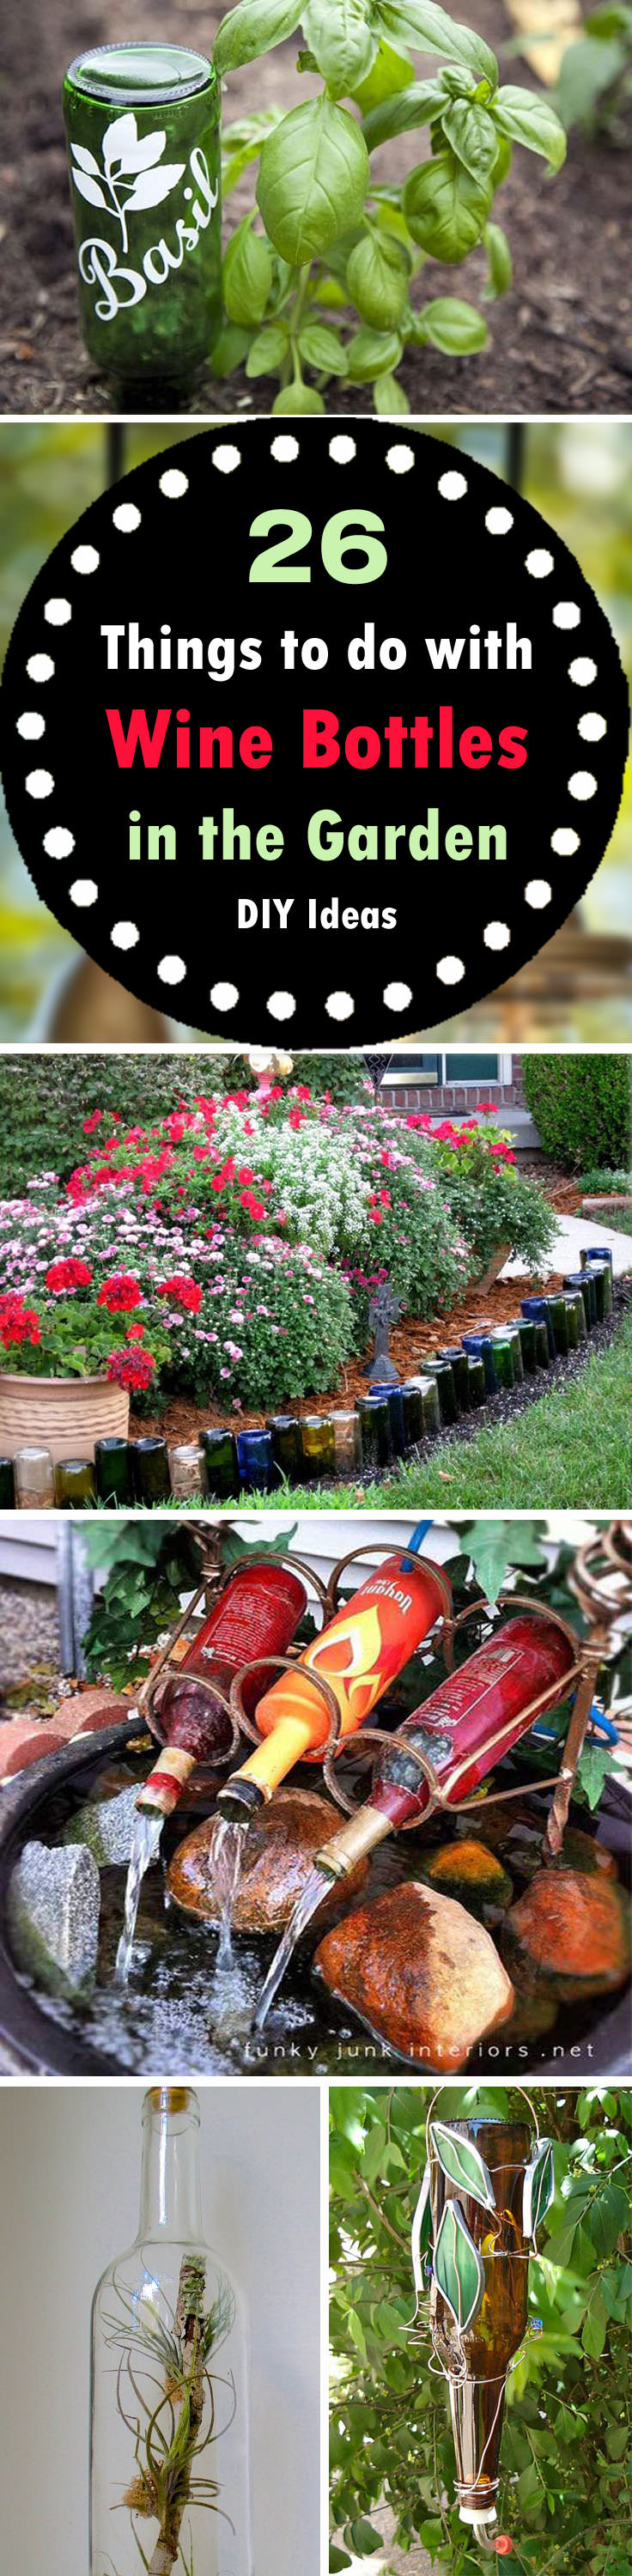 Diy wine bottle ideas for the garden 26 wine bottle uses balcony if you have got empty wine bottles in your home then these 26 diy wine bottle workwithnaturefo